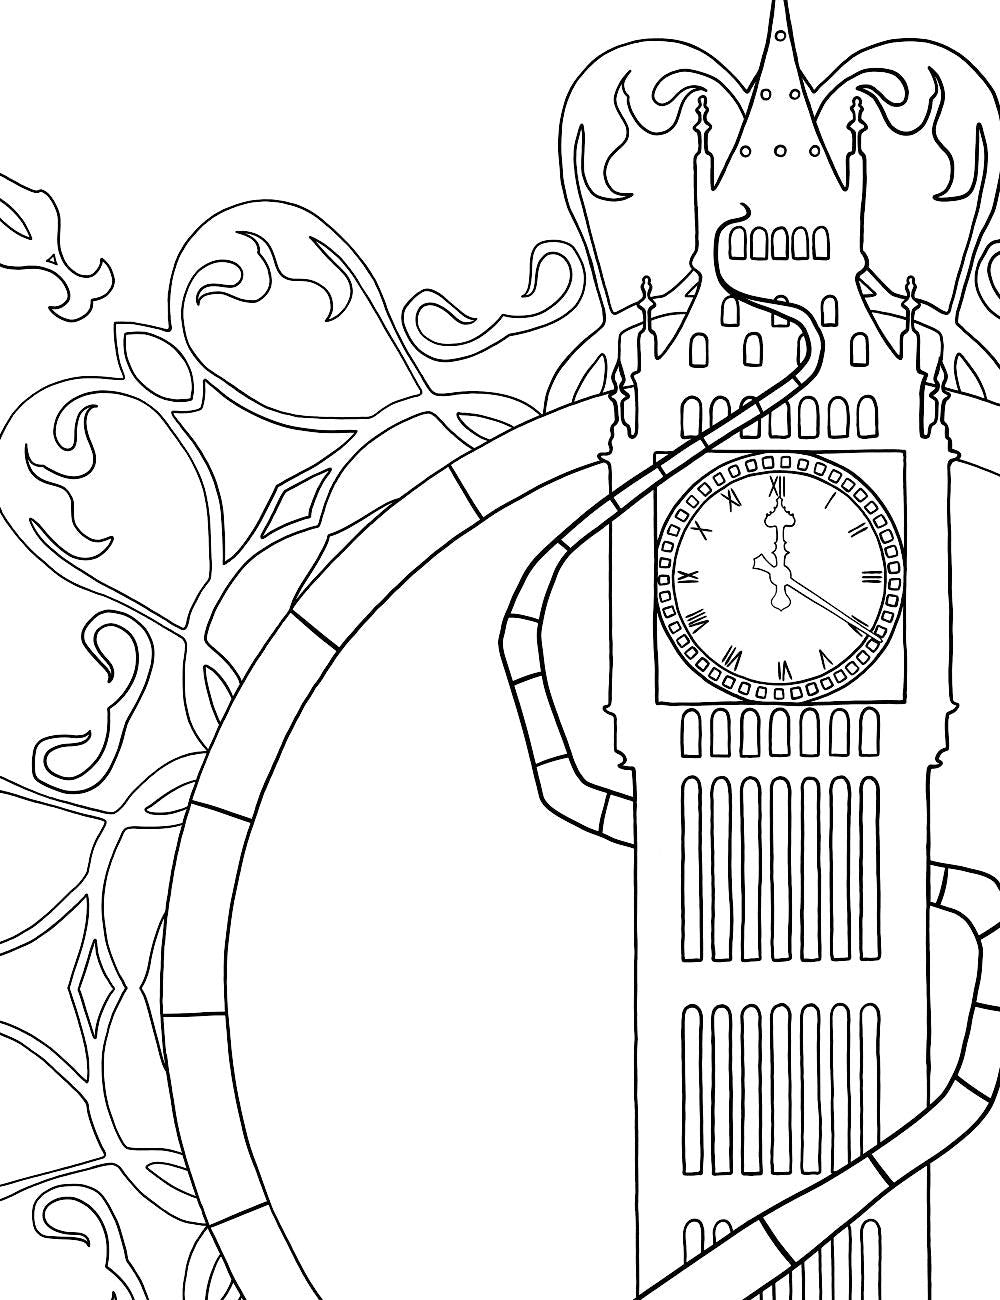 Asylum Coloring Book Page: Big Ben